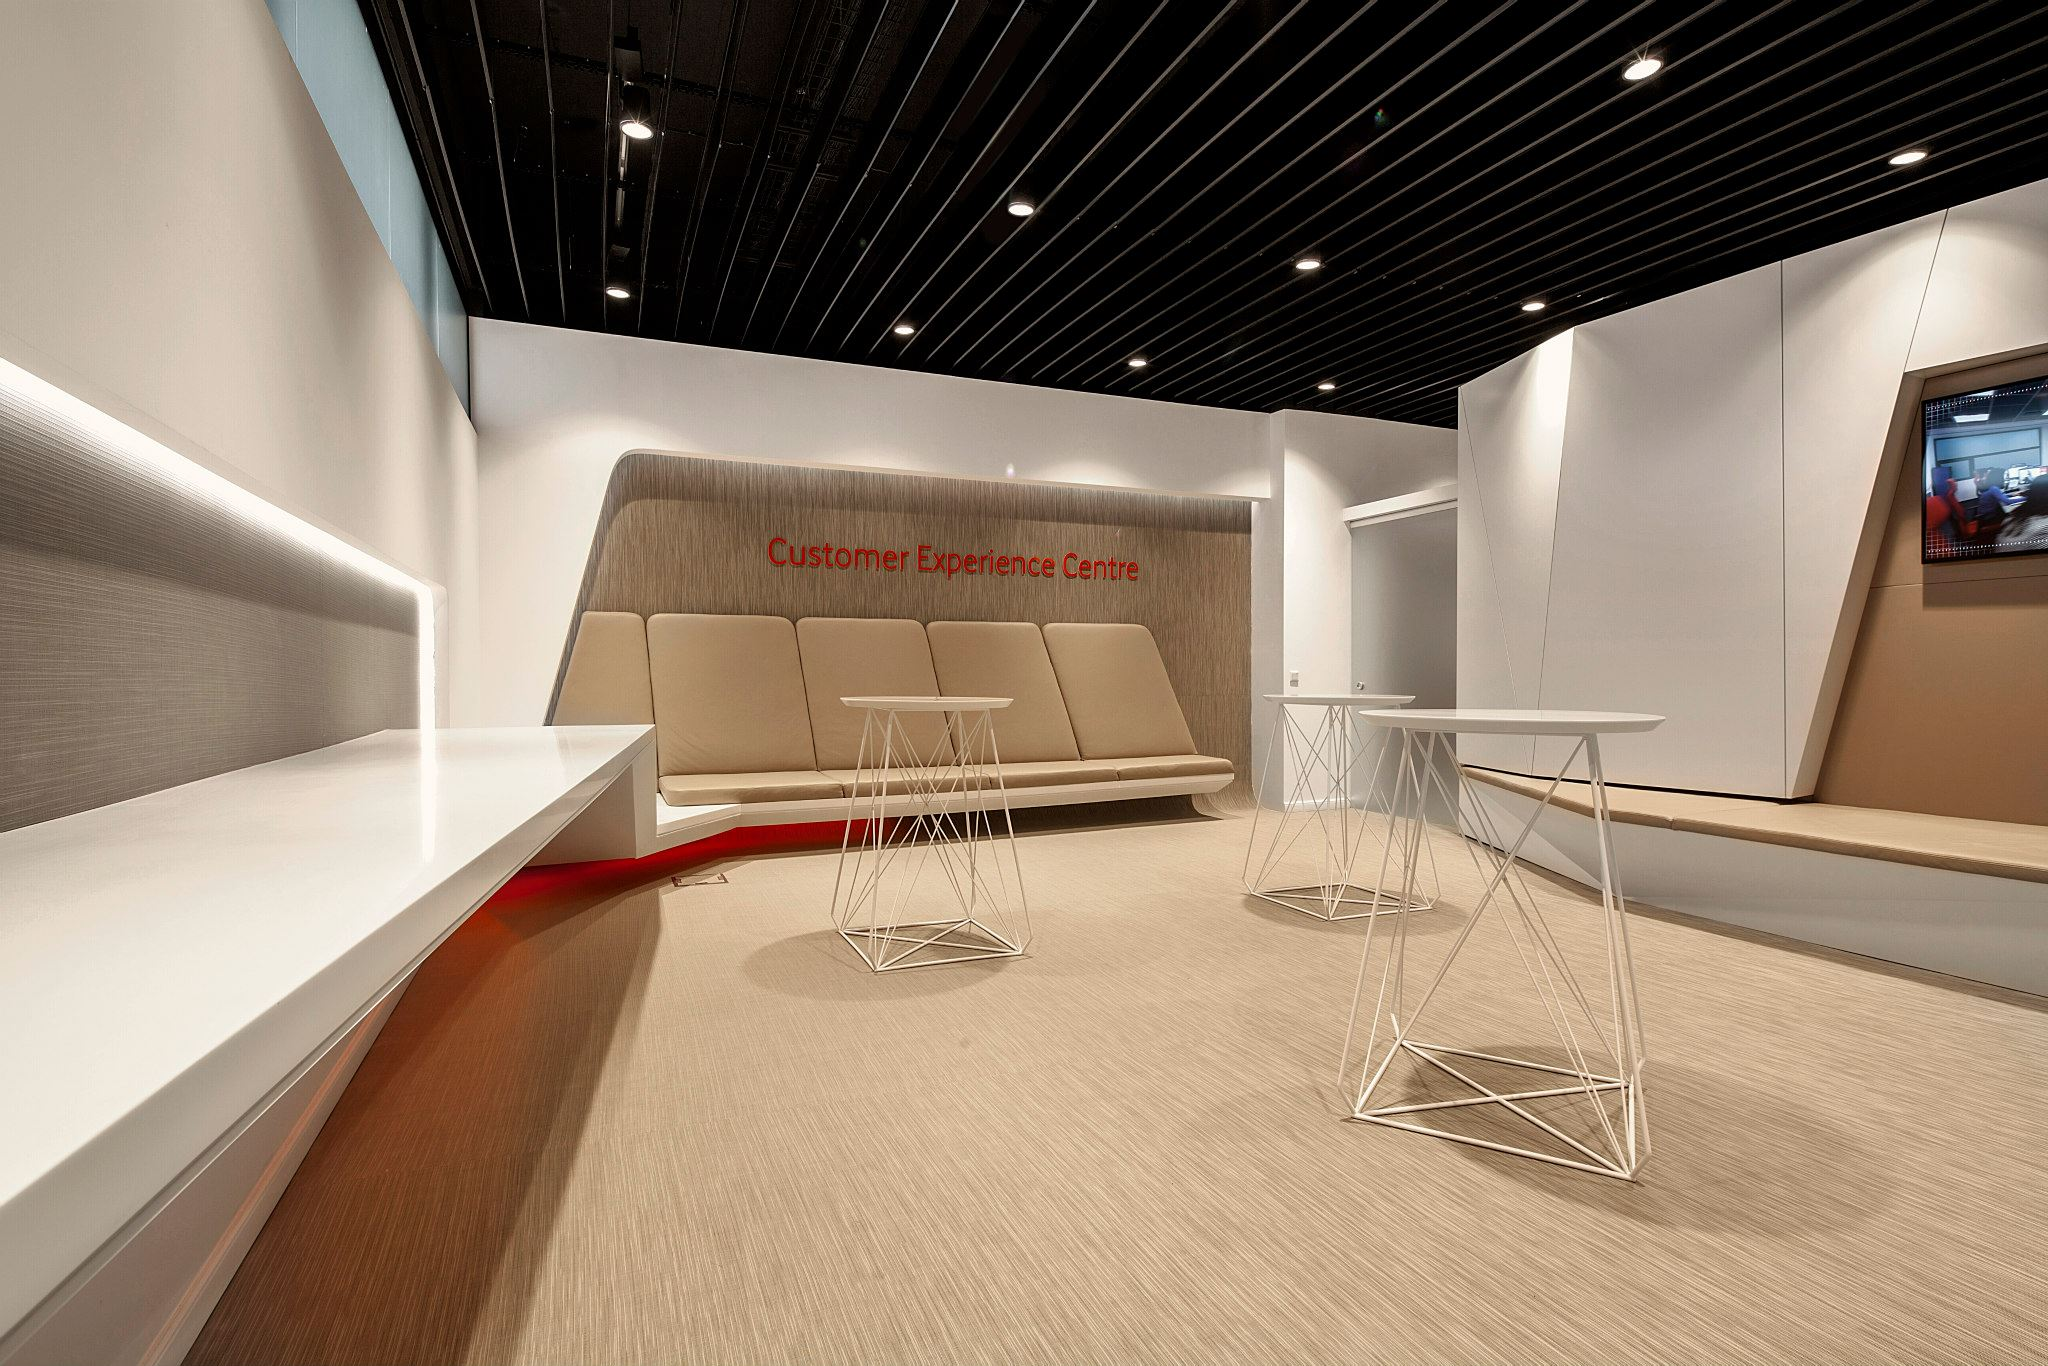 VODAFONE-Customer-Experience-Center-Pipera_Trivenus-Ama-Design_03